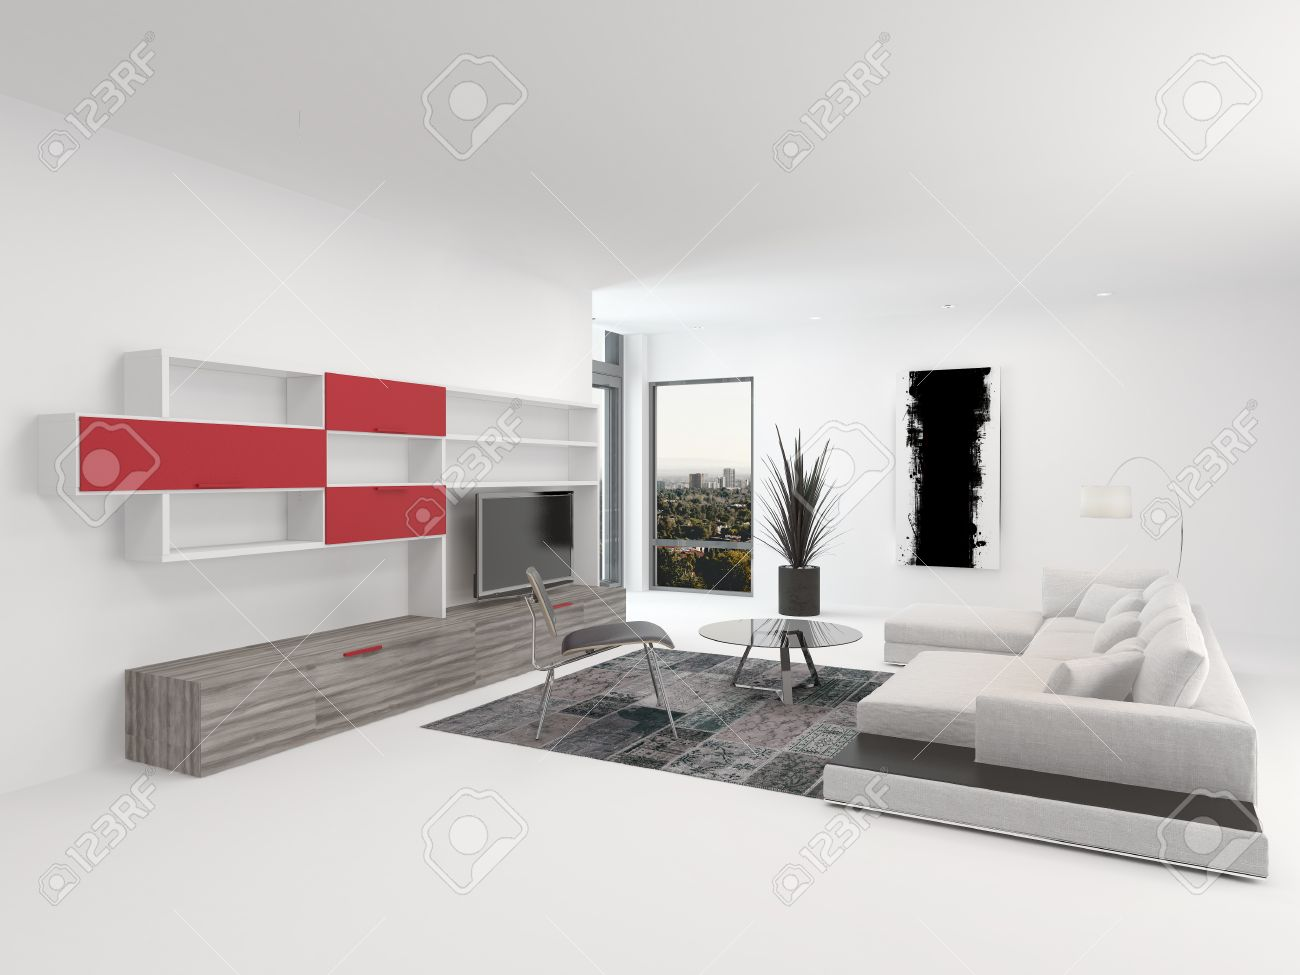 modern accents - upmarket modern living room interior with vivid red accents and